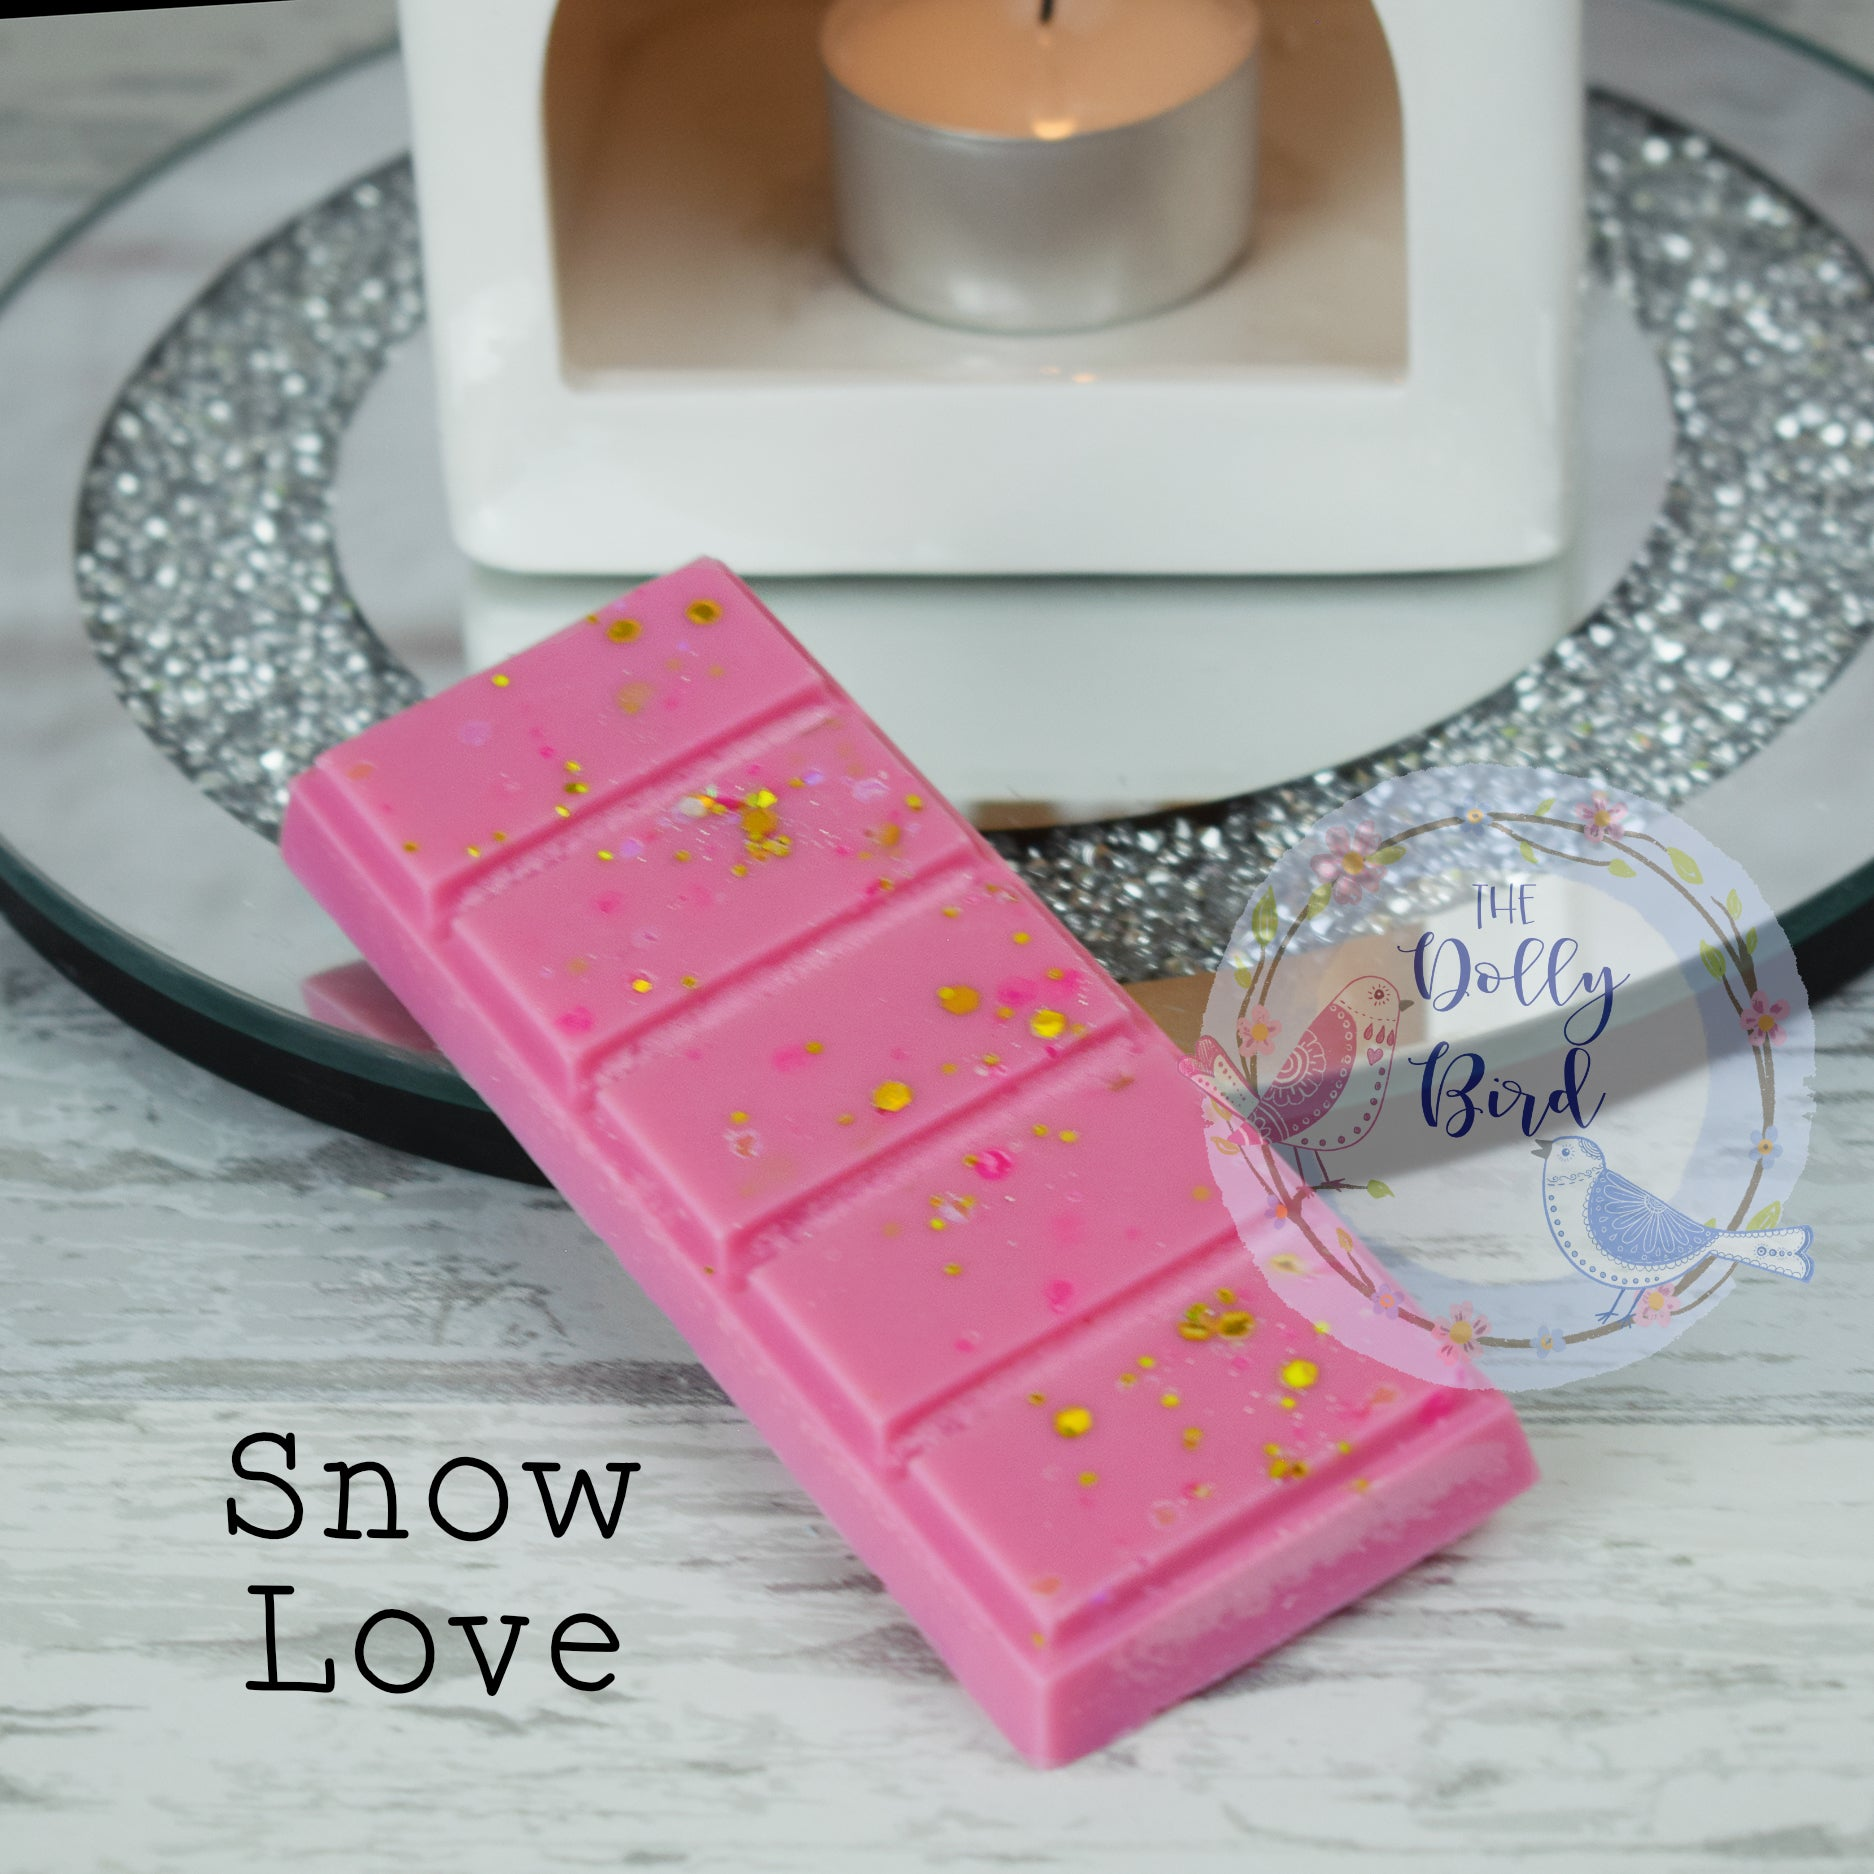 Snow Love Scented Wax Melt, Christmas Scented Wax Melt Snap Bar, Christmas Wax Melts, Highly Scented Wax Melts, Fresh Scent Wax Melts